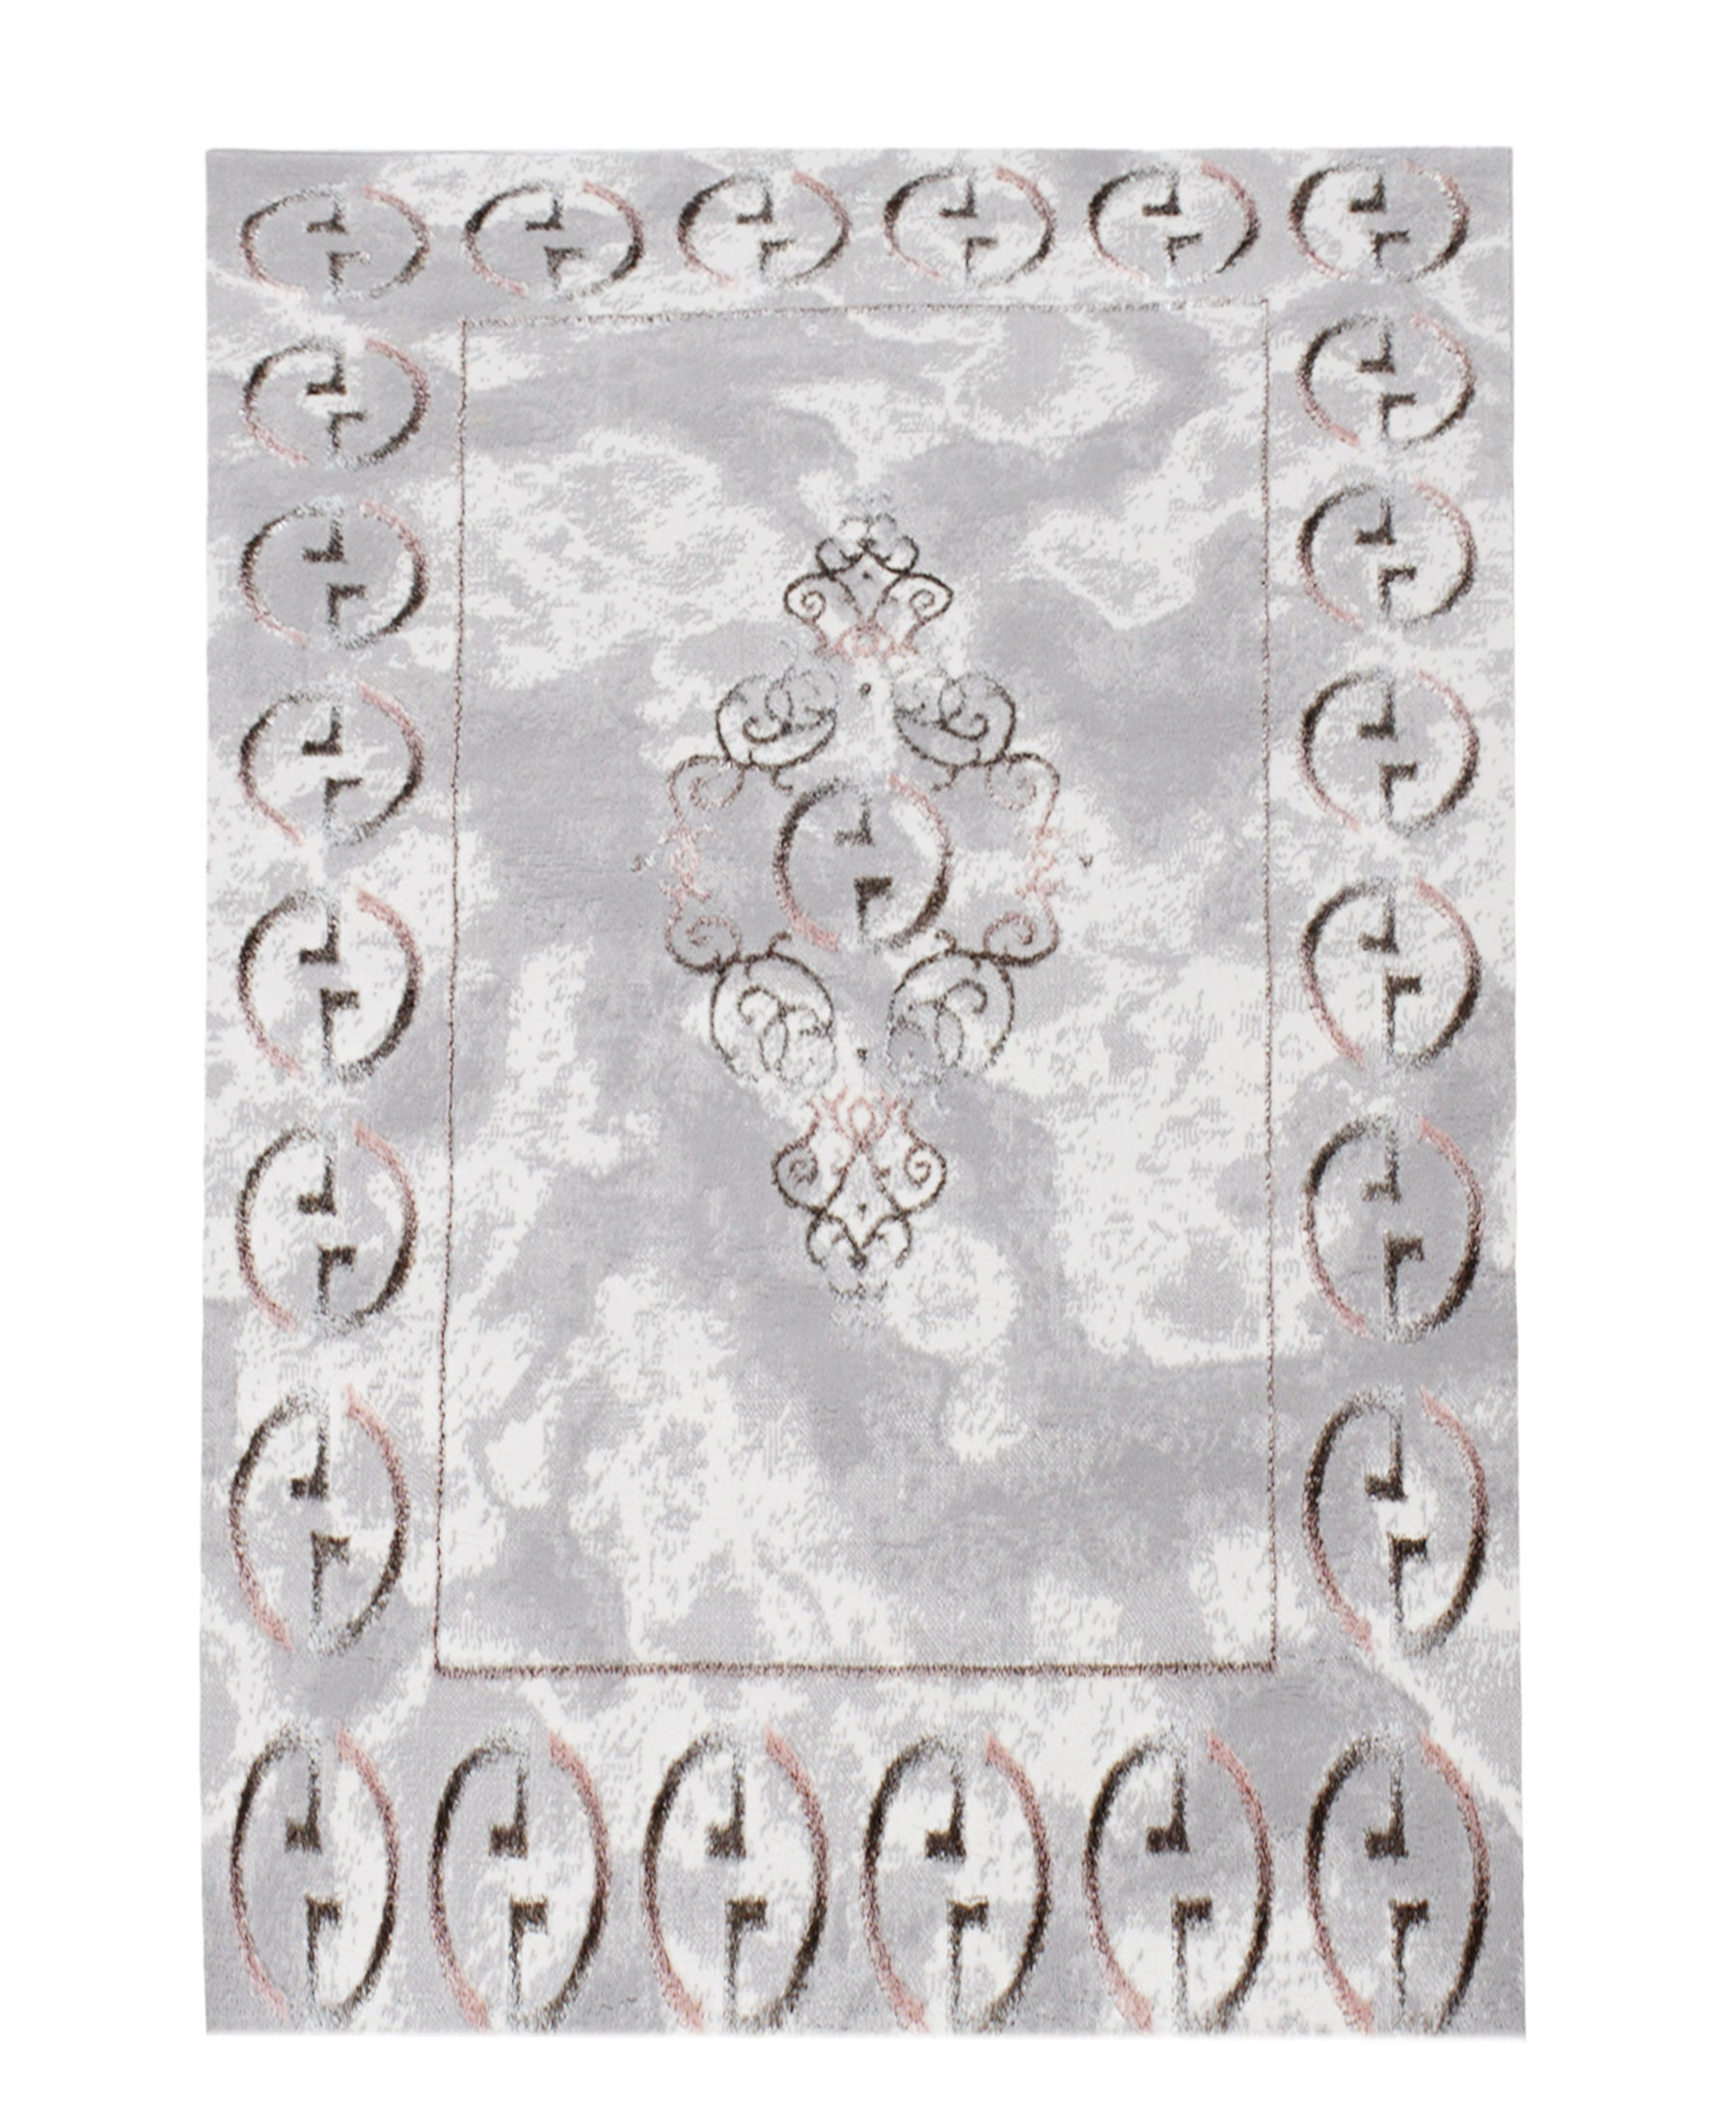 Bodrum Gucci Carpet 2000mm X 2700mm - Grey